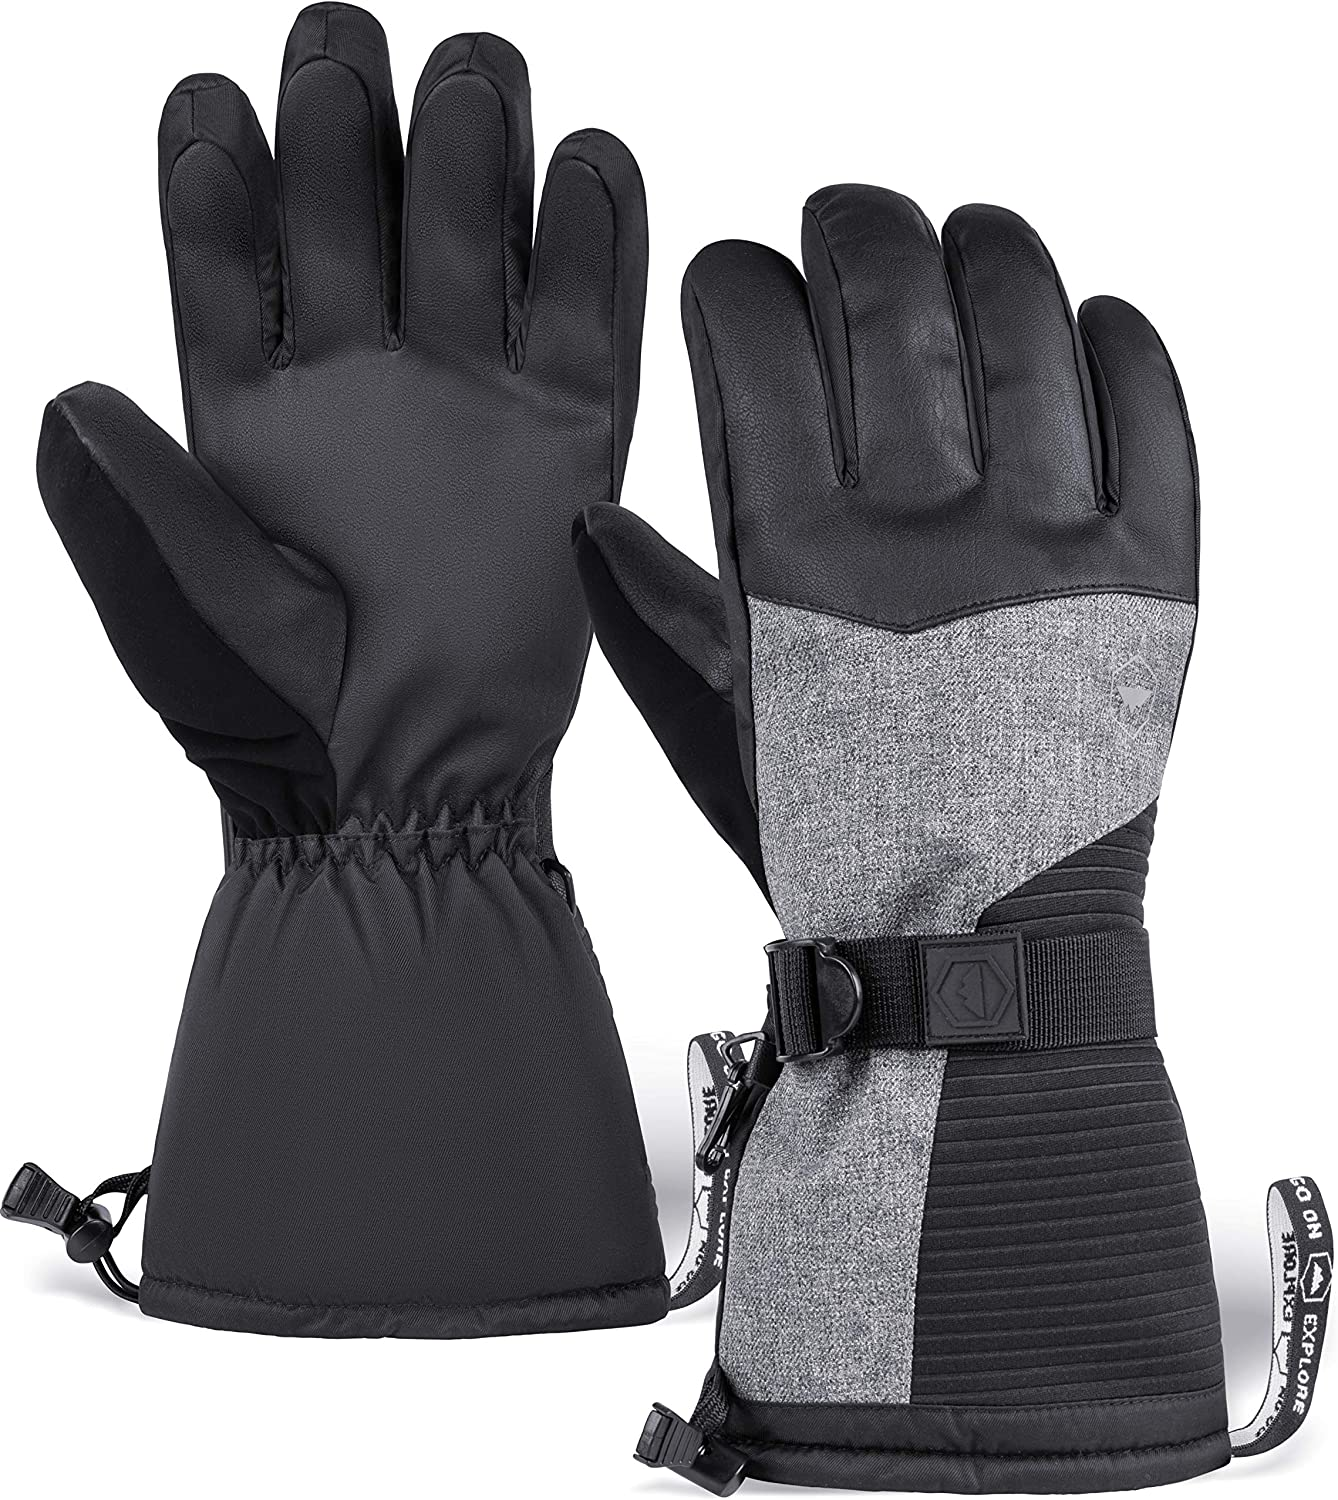 Ski & Snow Gloves - Waterproof & Windproof Winter Snowboard Gloves for Cold Weather Skiing & Snowboarding for Men & Women